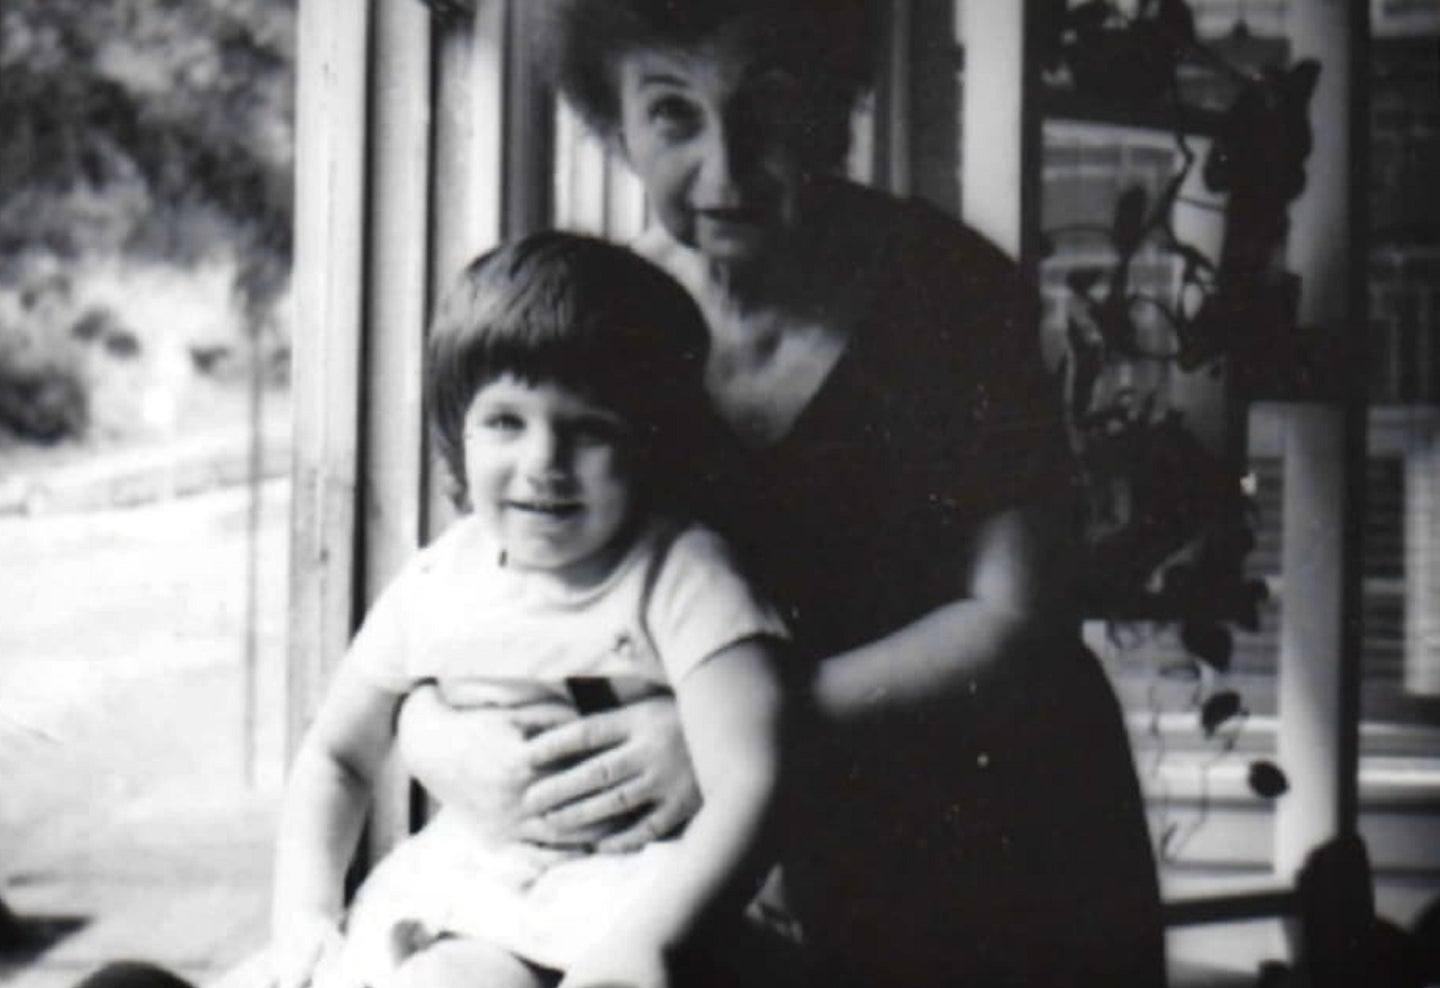 Toddler with grandmother near window in black and white photo